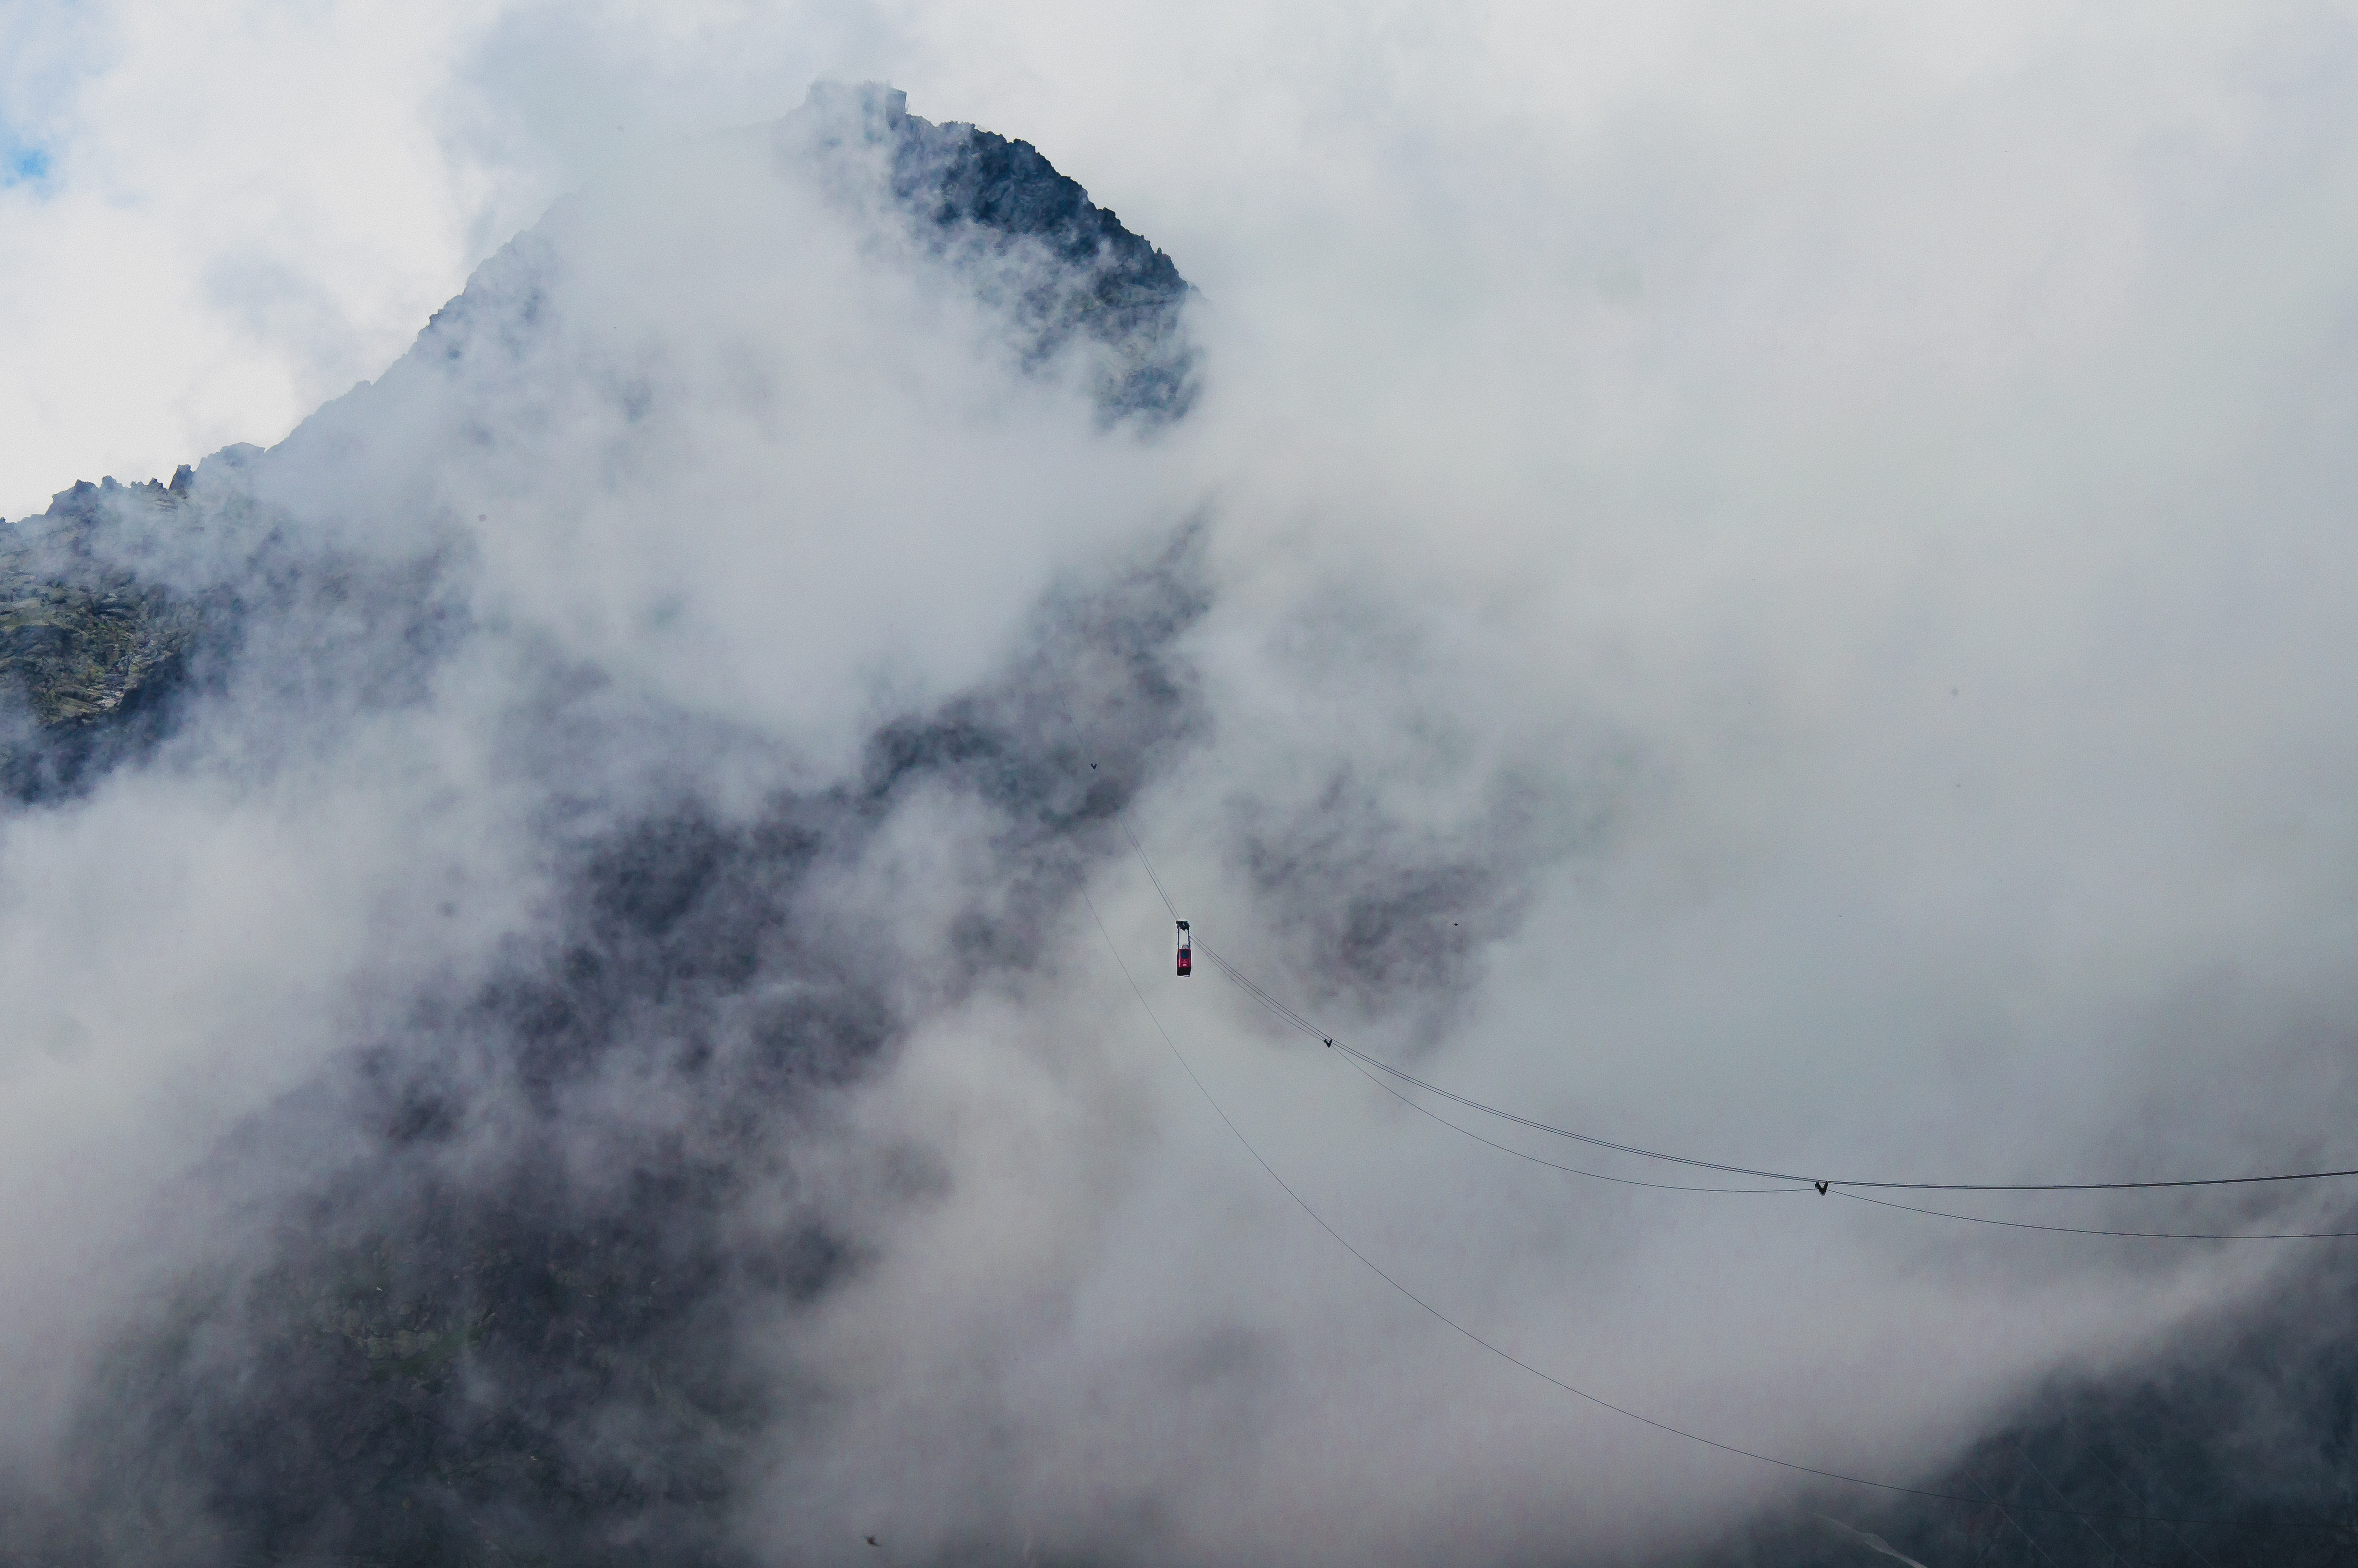 Wires strung through Tatra Mountains on a cloudy, foggy day